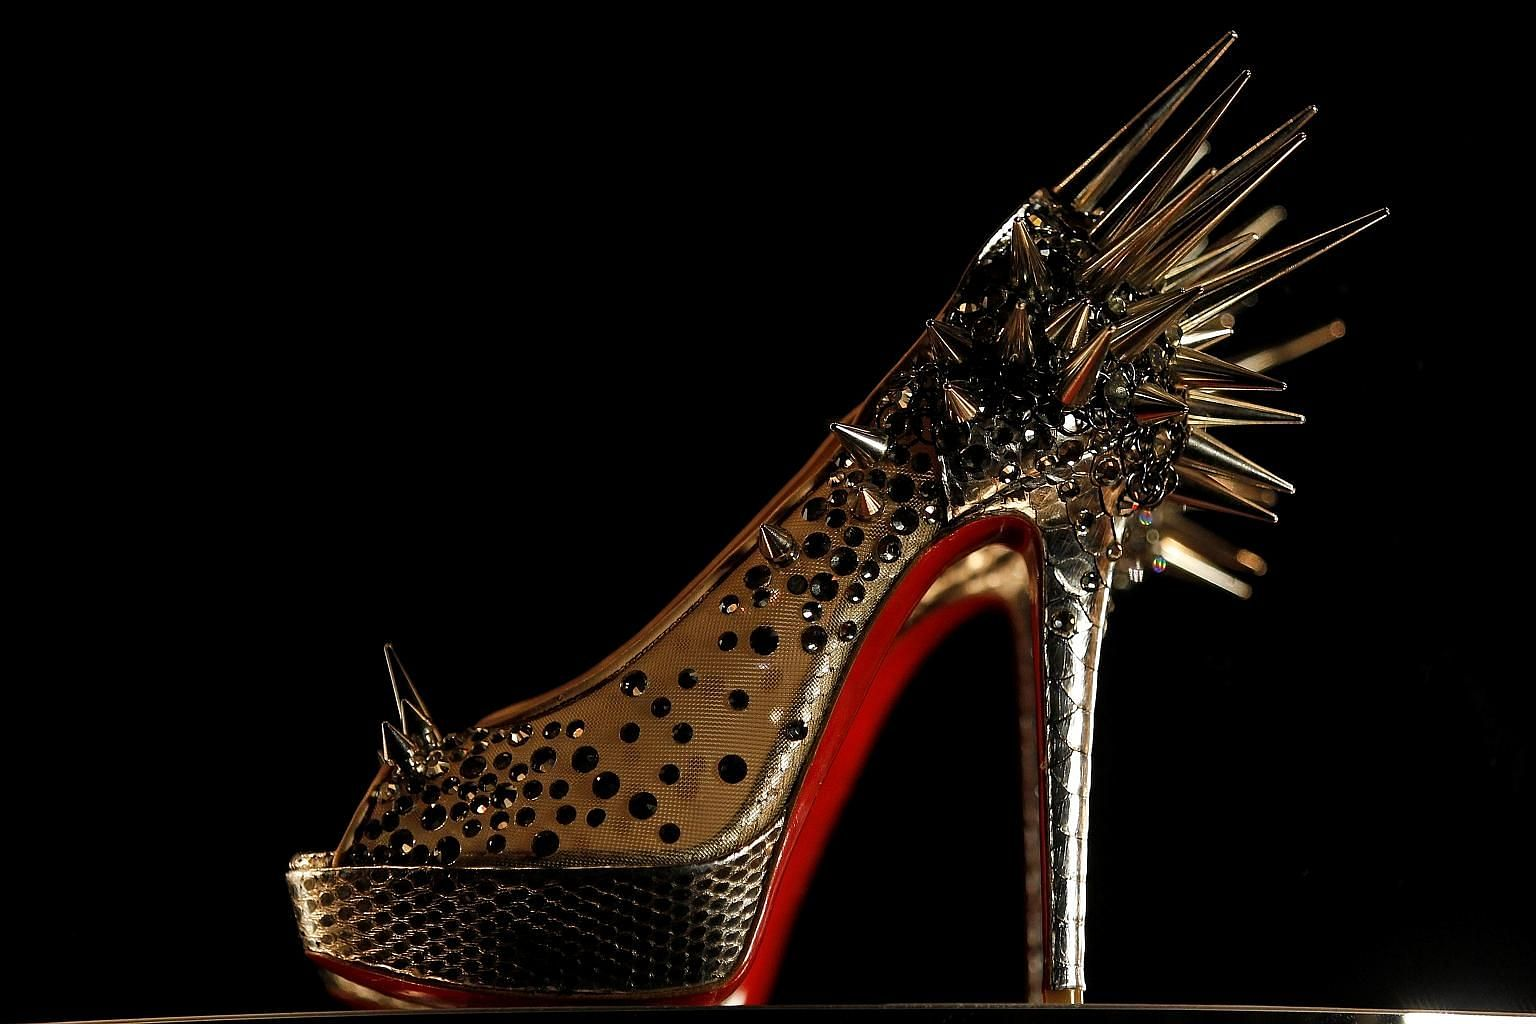 Paris-based Louboutin has marketed the red-soledshoes for more than 25 years.